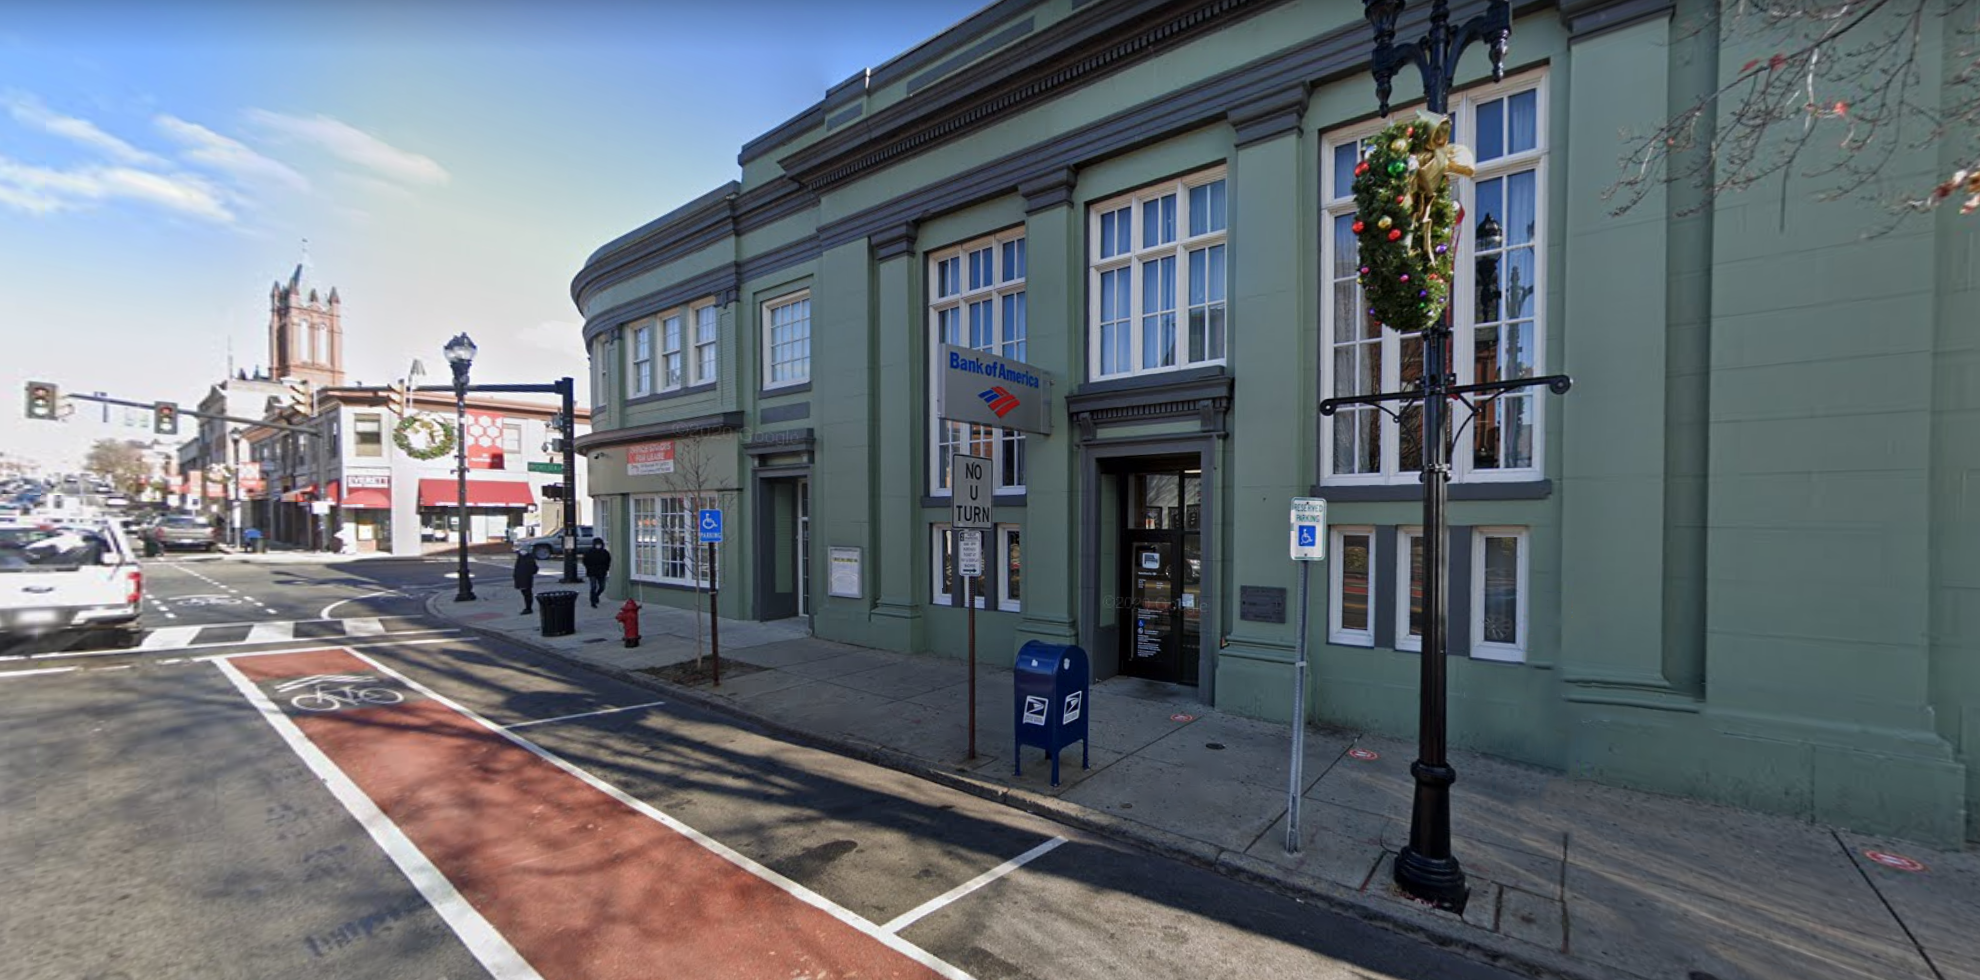 Bank of America financial center with walk-up ATM   431 Broadway, Everett, MA 02149